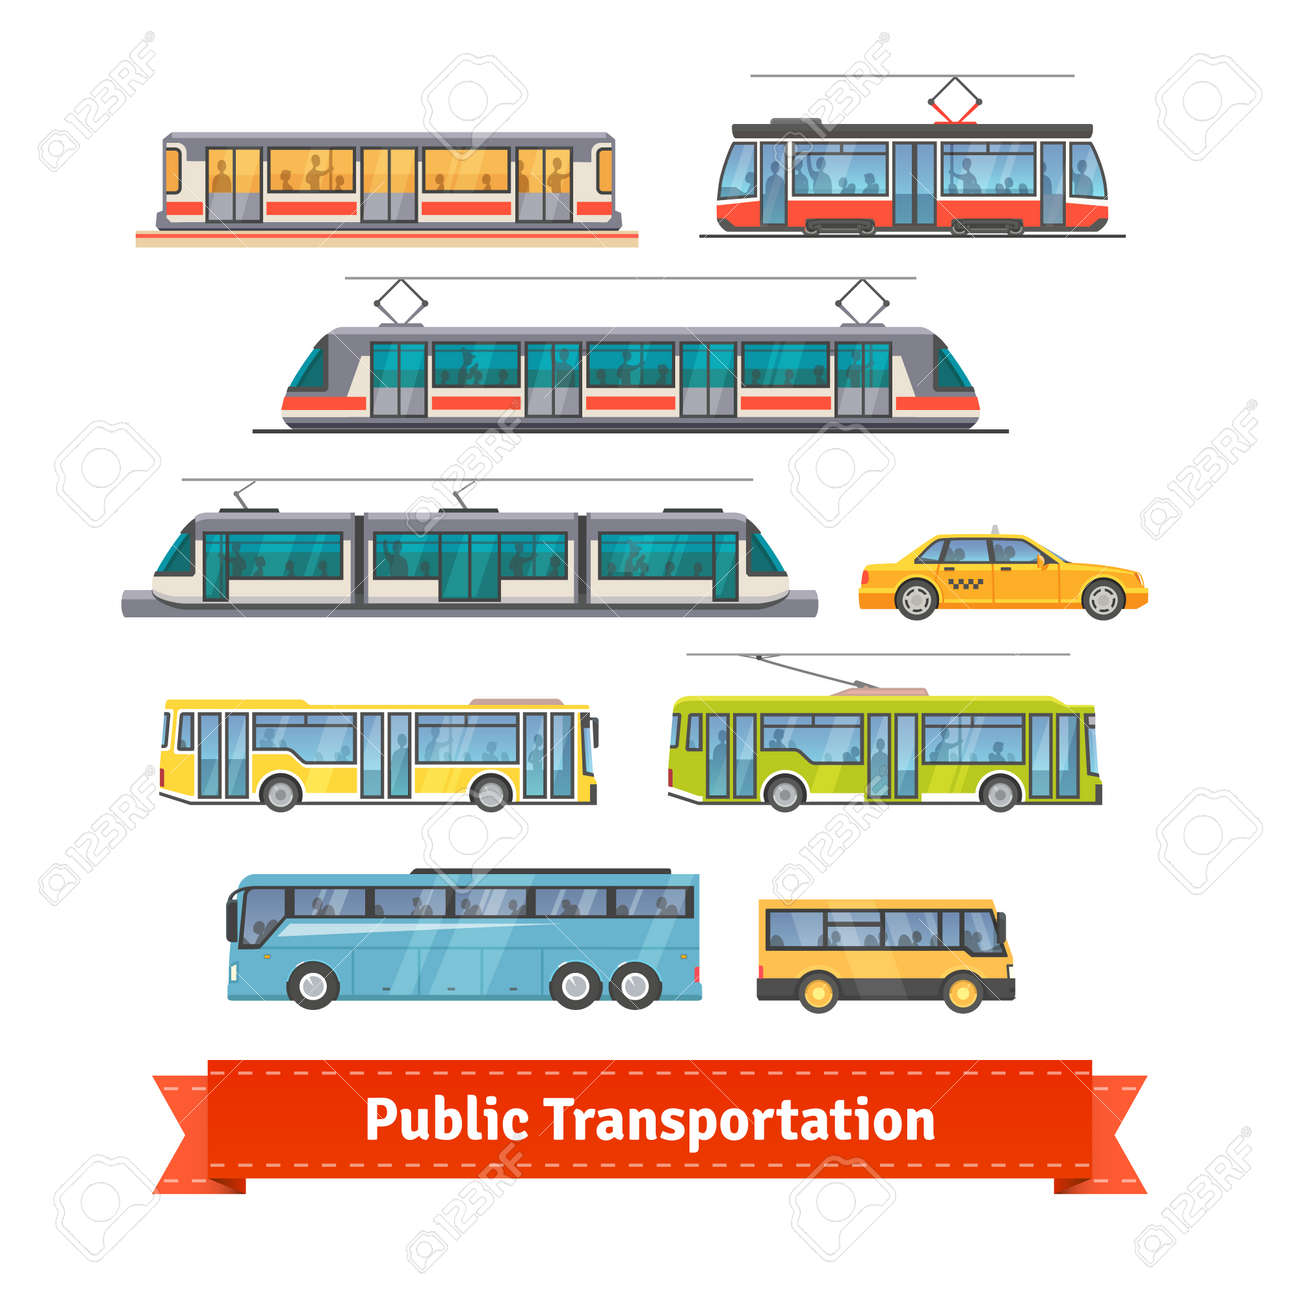 City and intercity transportation vehicles icon set. Trains, subway, buses and taxi. Flat style illustration or icon. EPS 10 vector. - 51018315